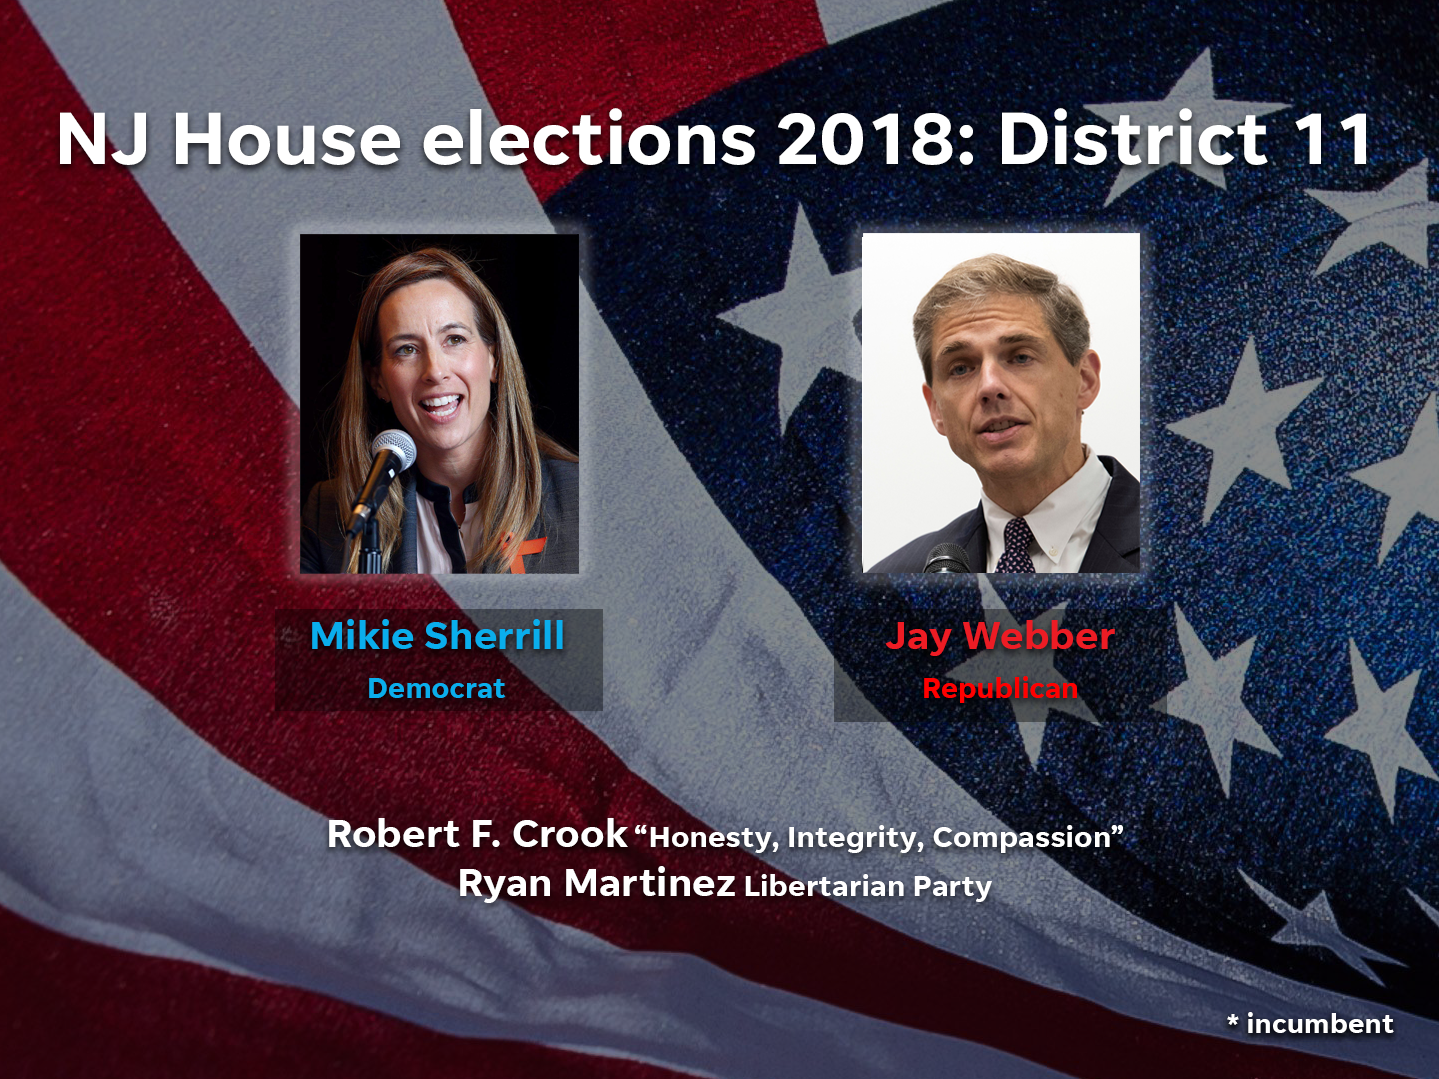 Mikie Sherrill (D) and Jay Webber (R) are among the candidates running in District 11 in the 2018 NJ House elections.